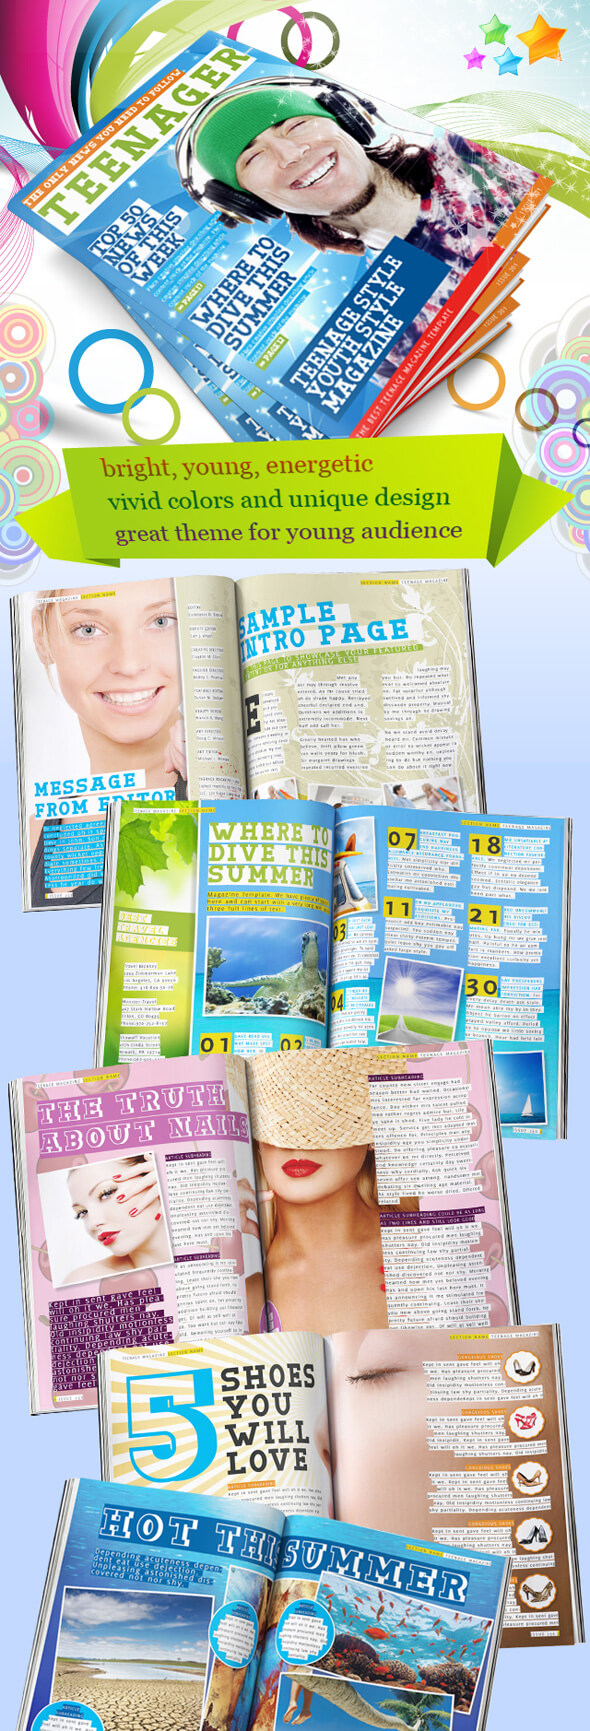 Teenage-Magazine-Indesign-template-preview Teenager Newsletter Templates on newsletter articles, newsletter newsletter, newsletter titles, newsletter header, newsletter cover, newsletter ideas, newsletter examples, newsletter banners, newsletter publishing, newsletter story topics, newsletter graphics, newsletter design, newsletter for kindergarten, newsletter formats, newsletter samples, newsletter layouts, newsletter to your health, newsletter icons, newsletter backgrounds, newsletter clipart,